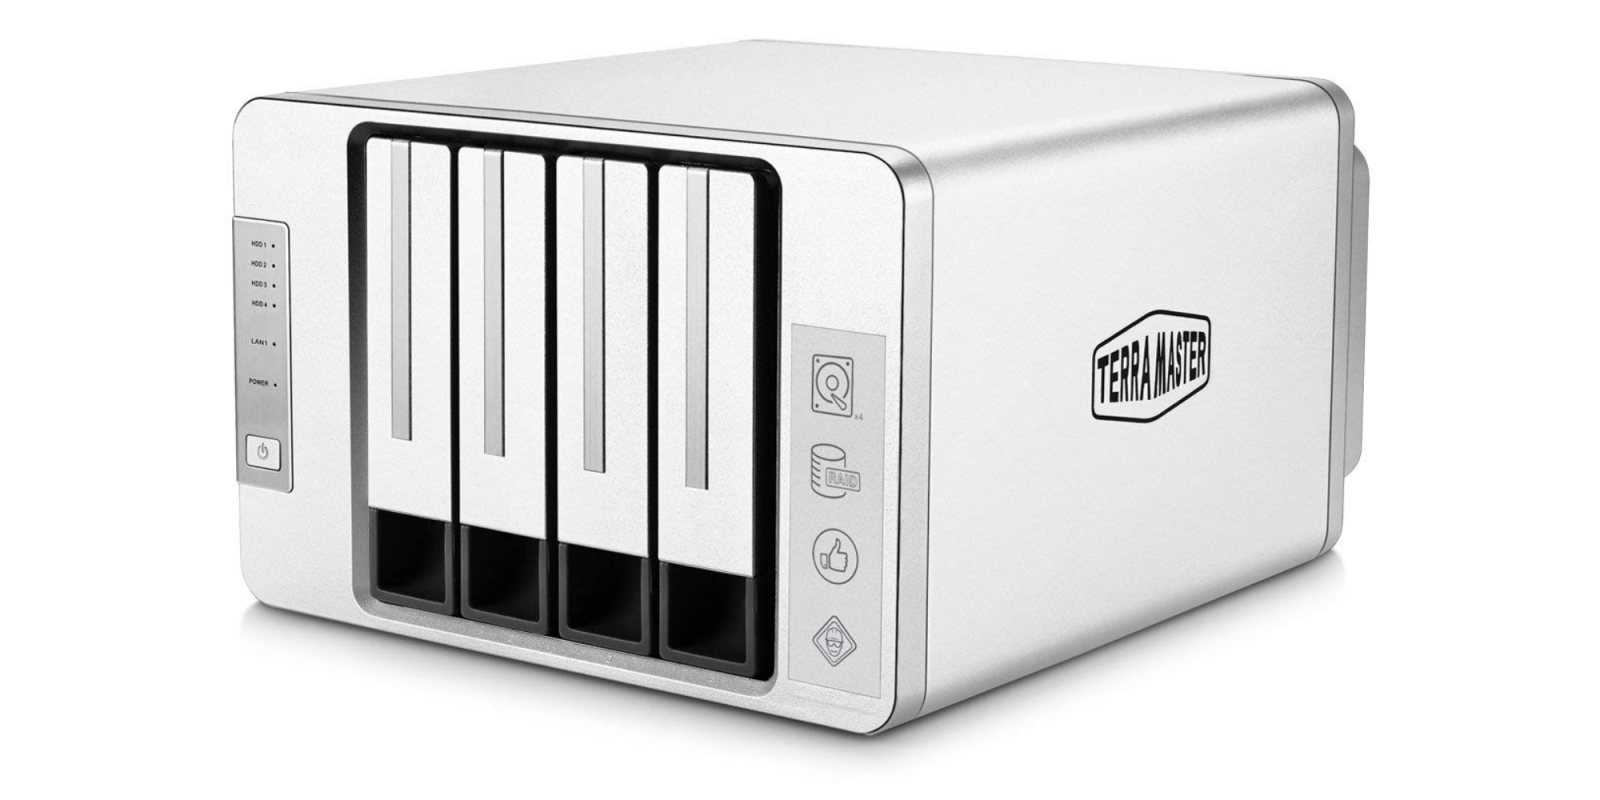 TerraMaster's $200 4-Bay NAS gives your media server an upgrade with a 48TB capacity (33% off)